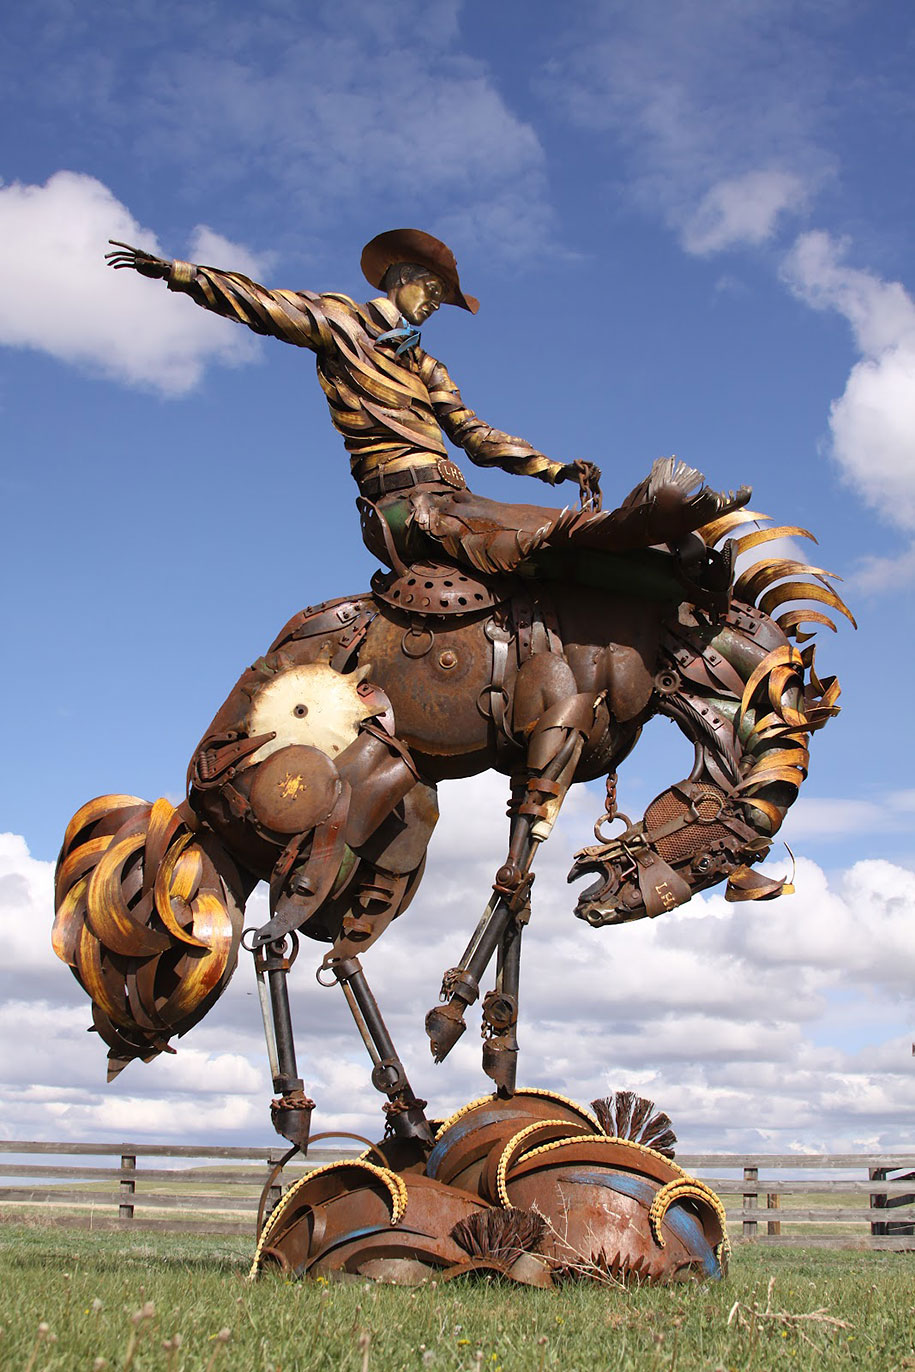 Scrap Metal Sculptures Made Of Old Farm Equipment By John Lopez - Artist creates incredible sculptures welding together old farming equipment